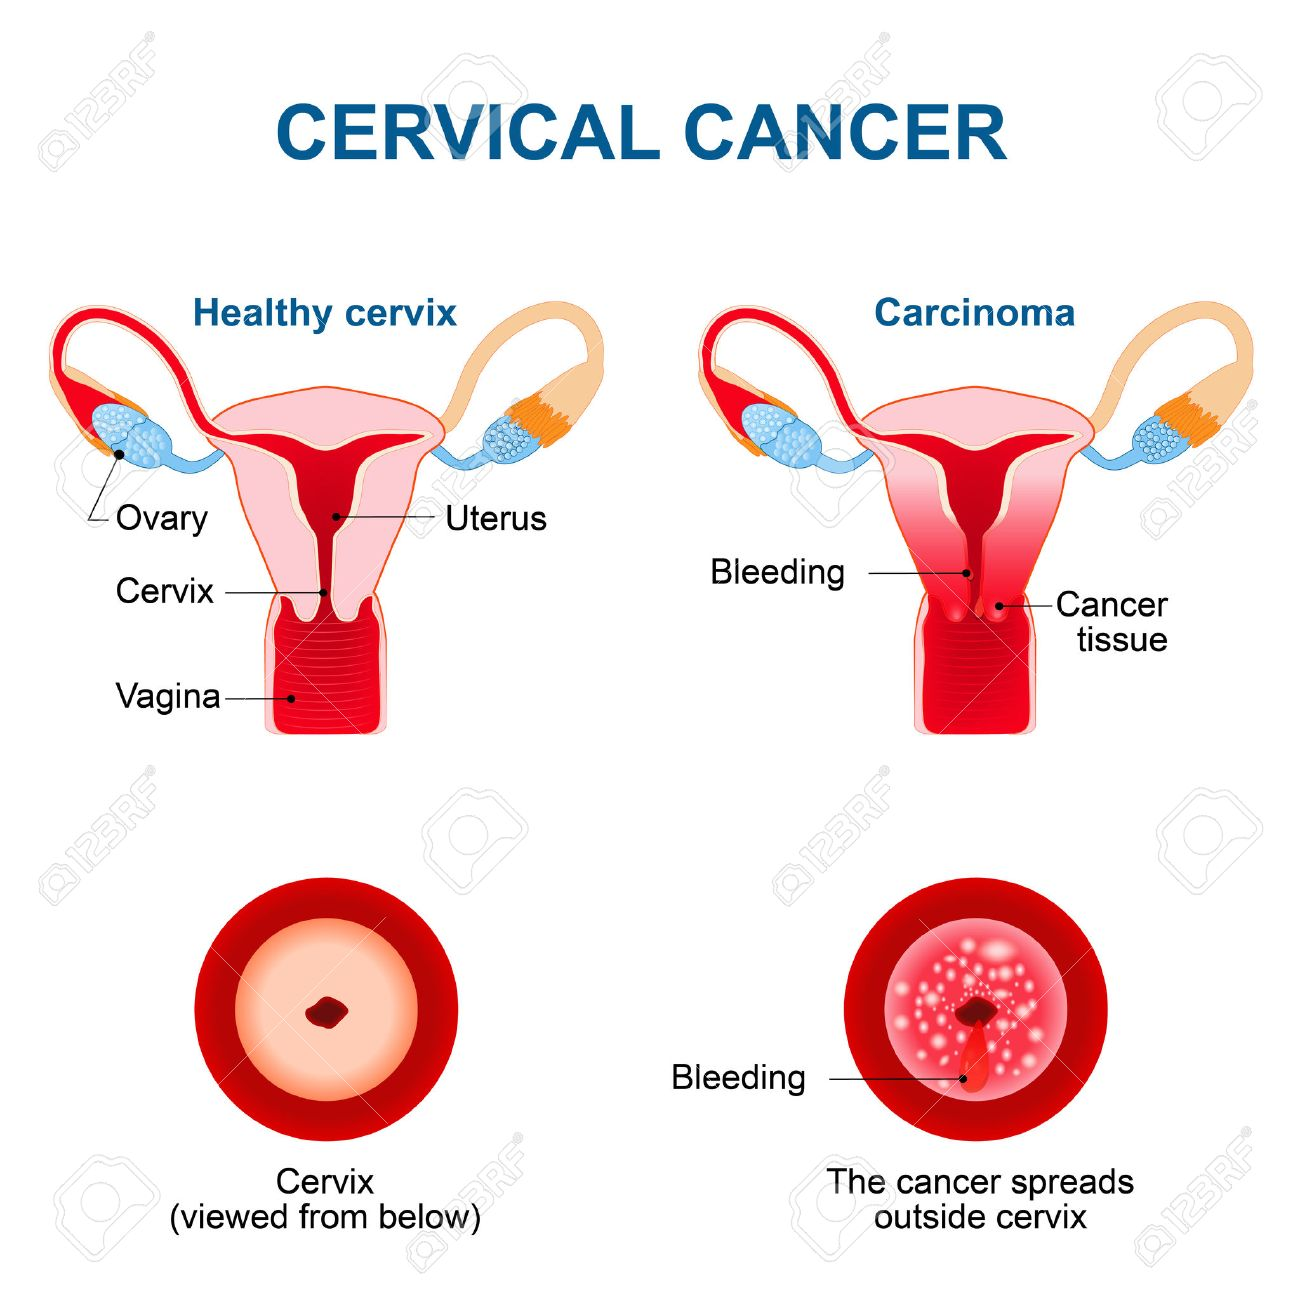 2041 cervix stock illustrations cliparts and royalty free cervix cervical cancer carcinoma of cervix malignant neoplasm arising from cells in the cervix uteri ccuart